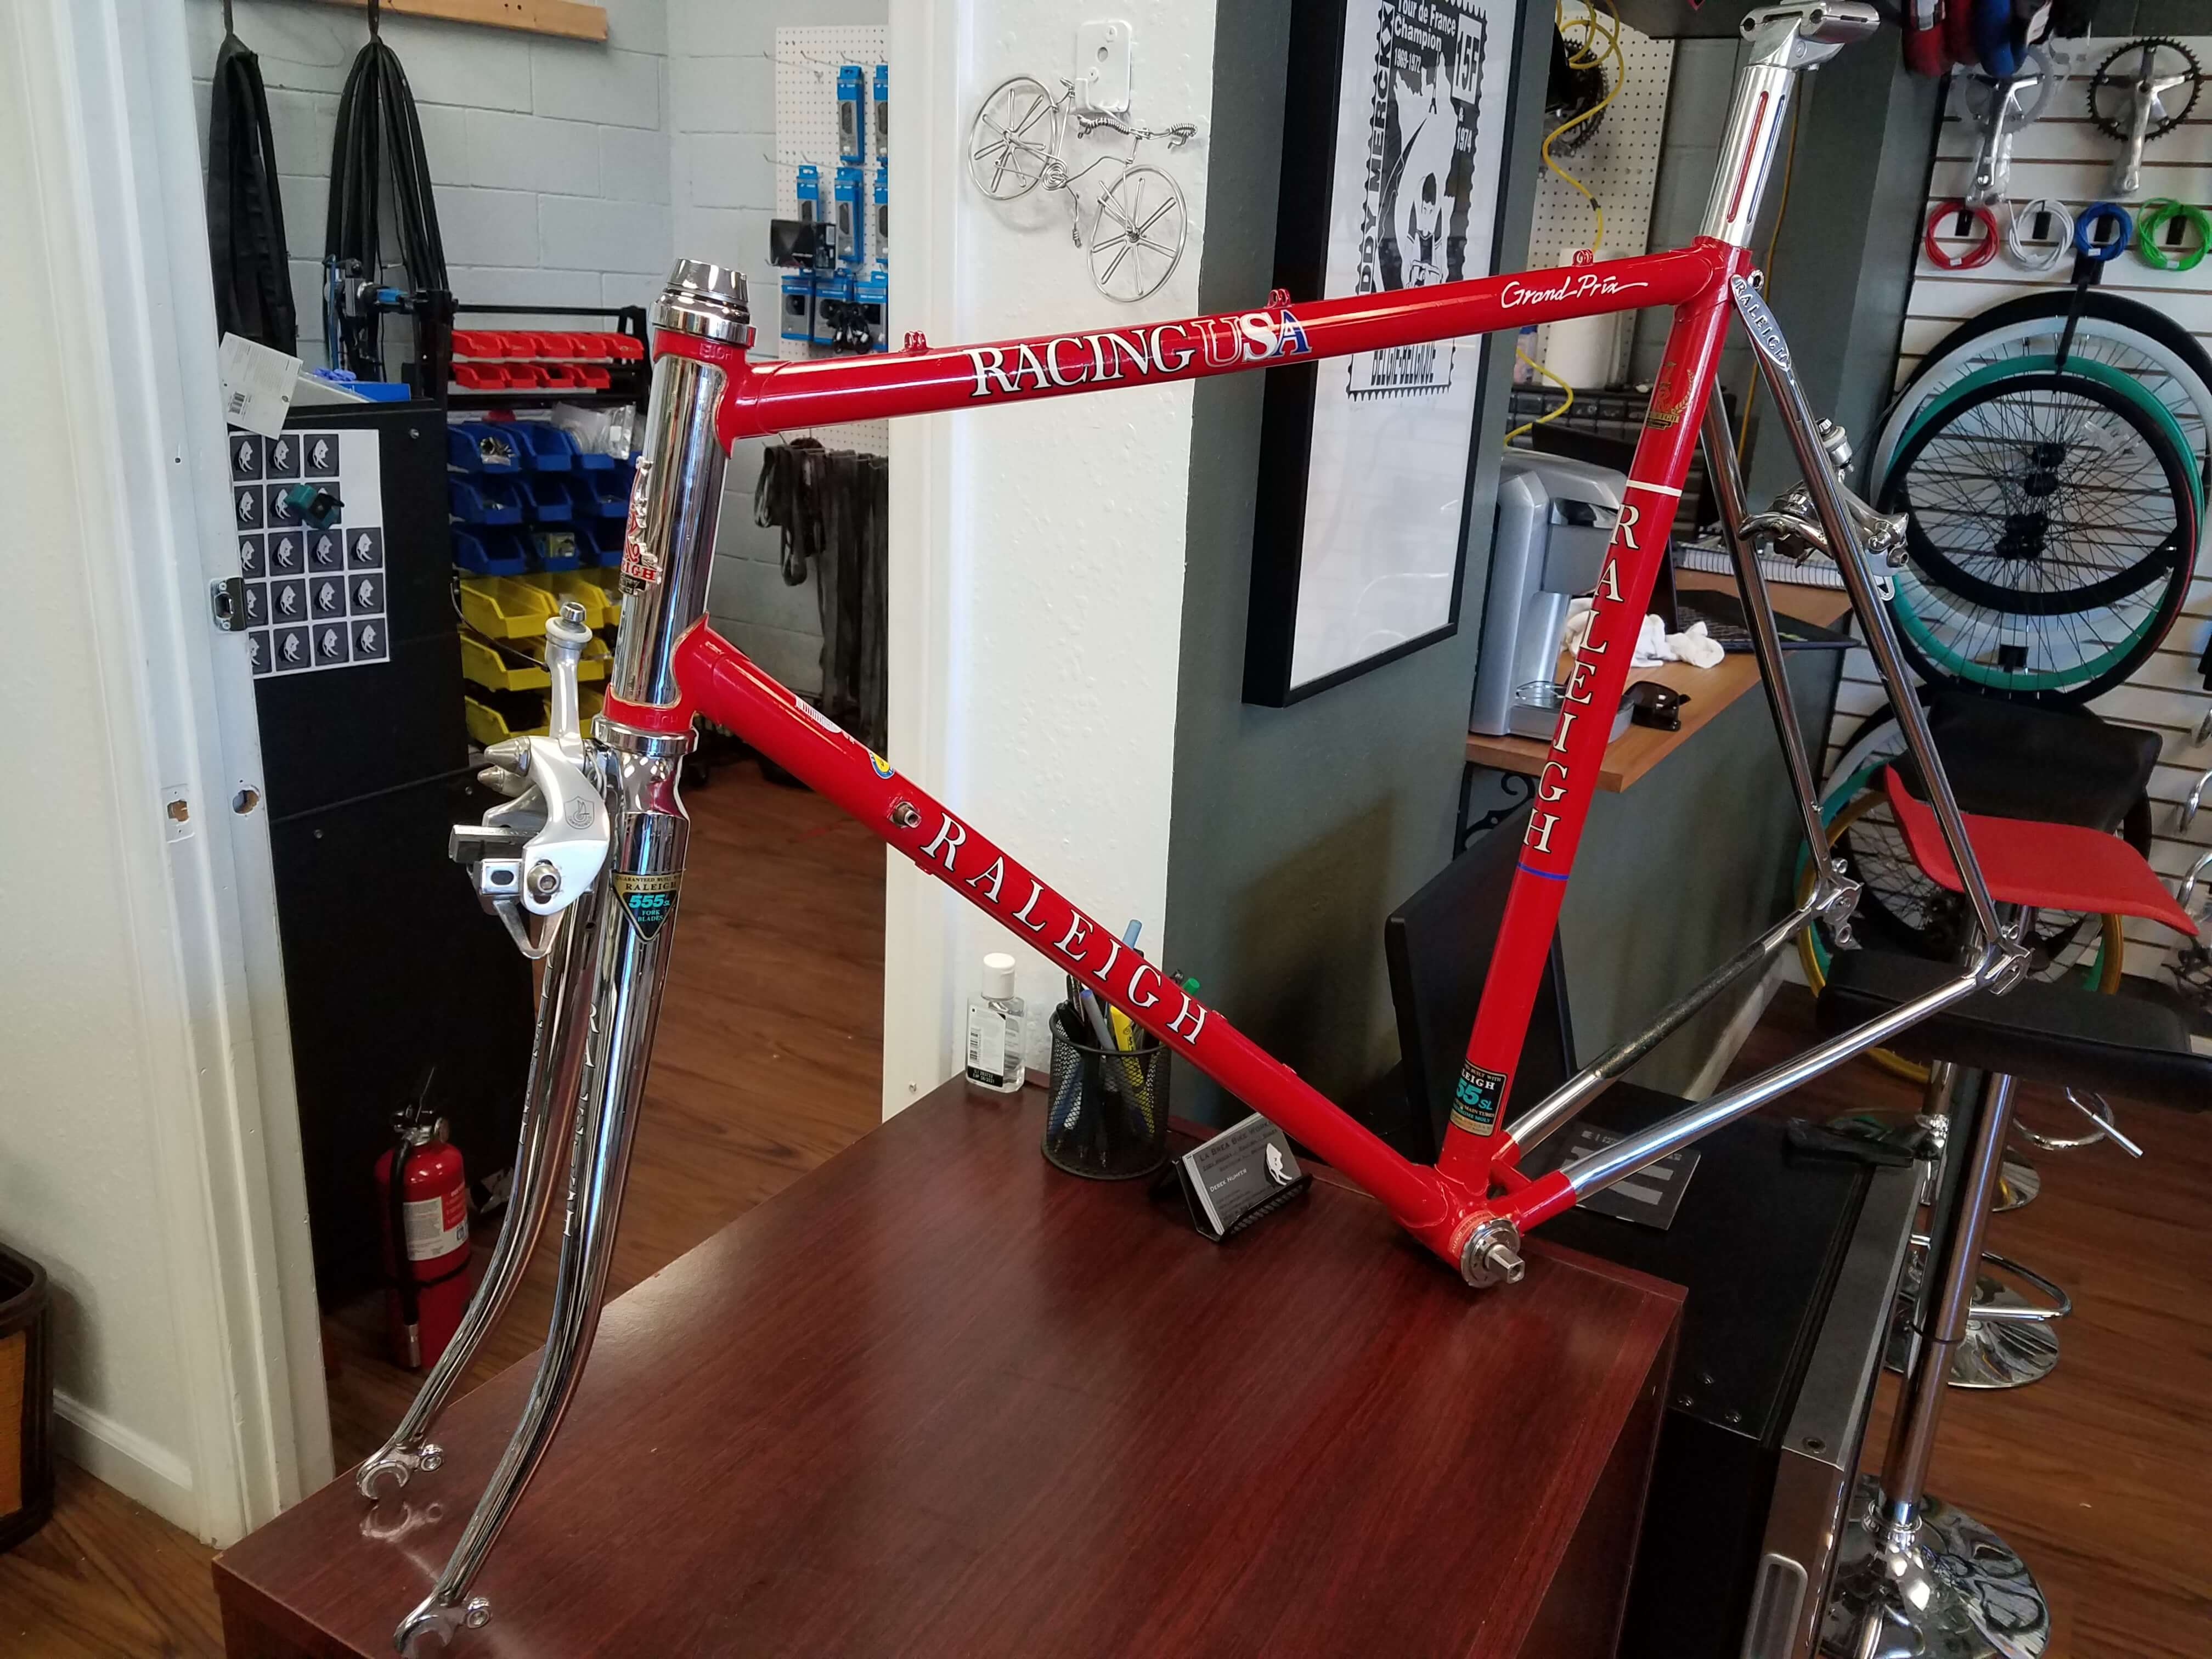 Campy build coming